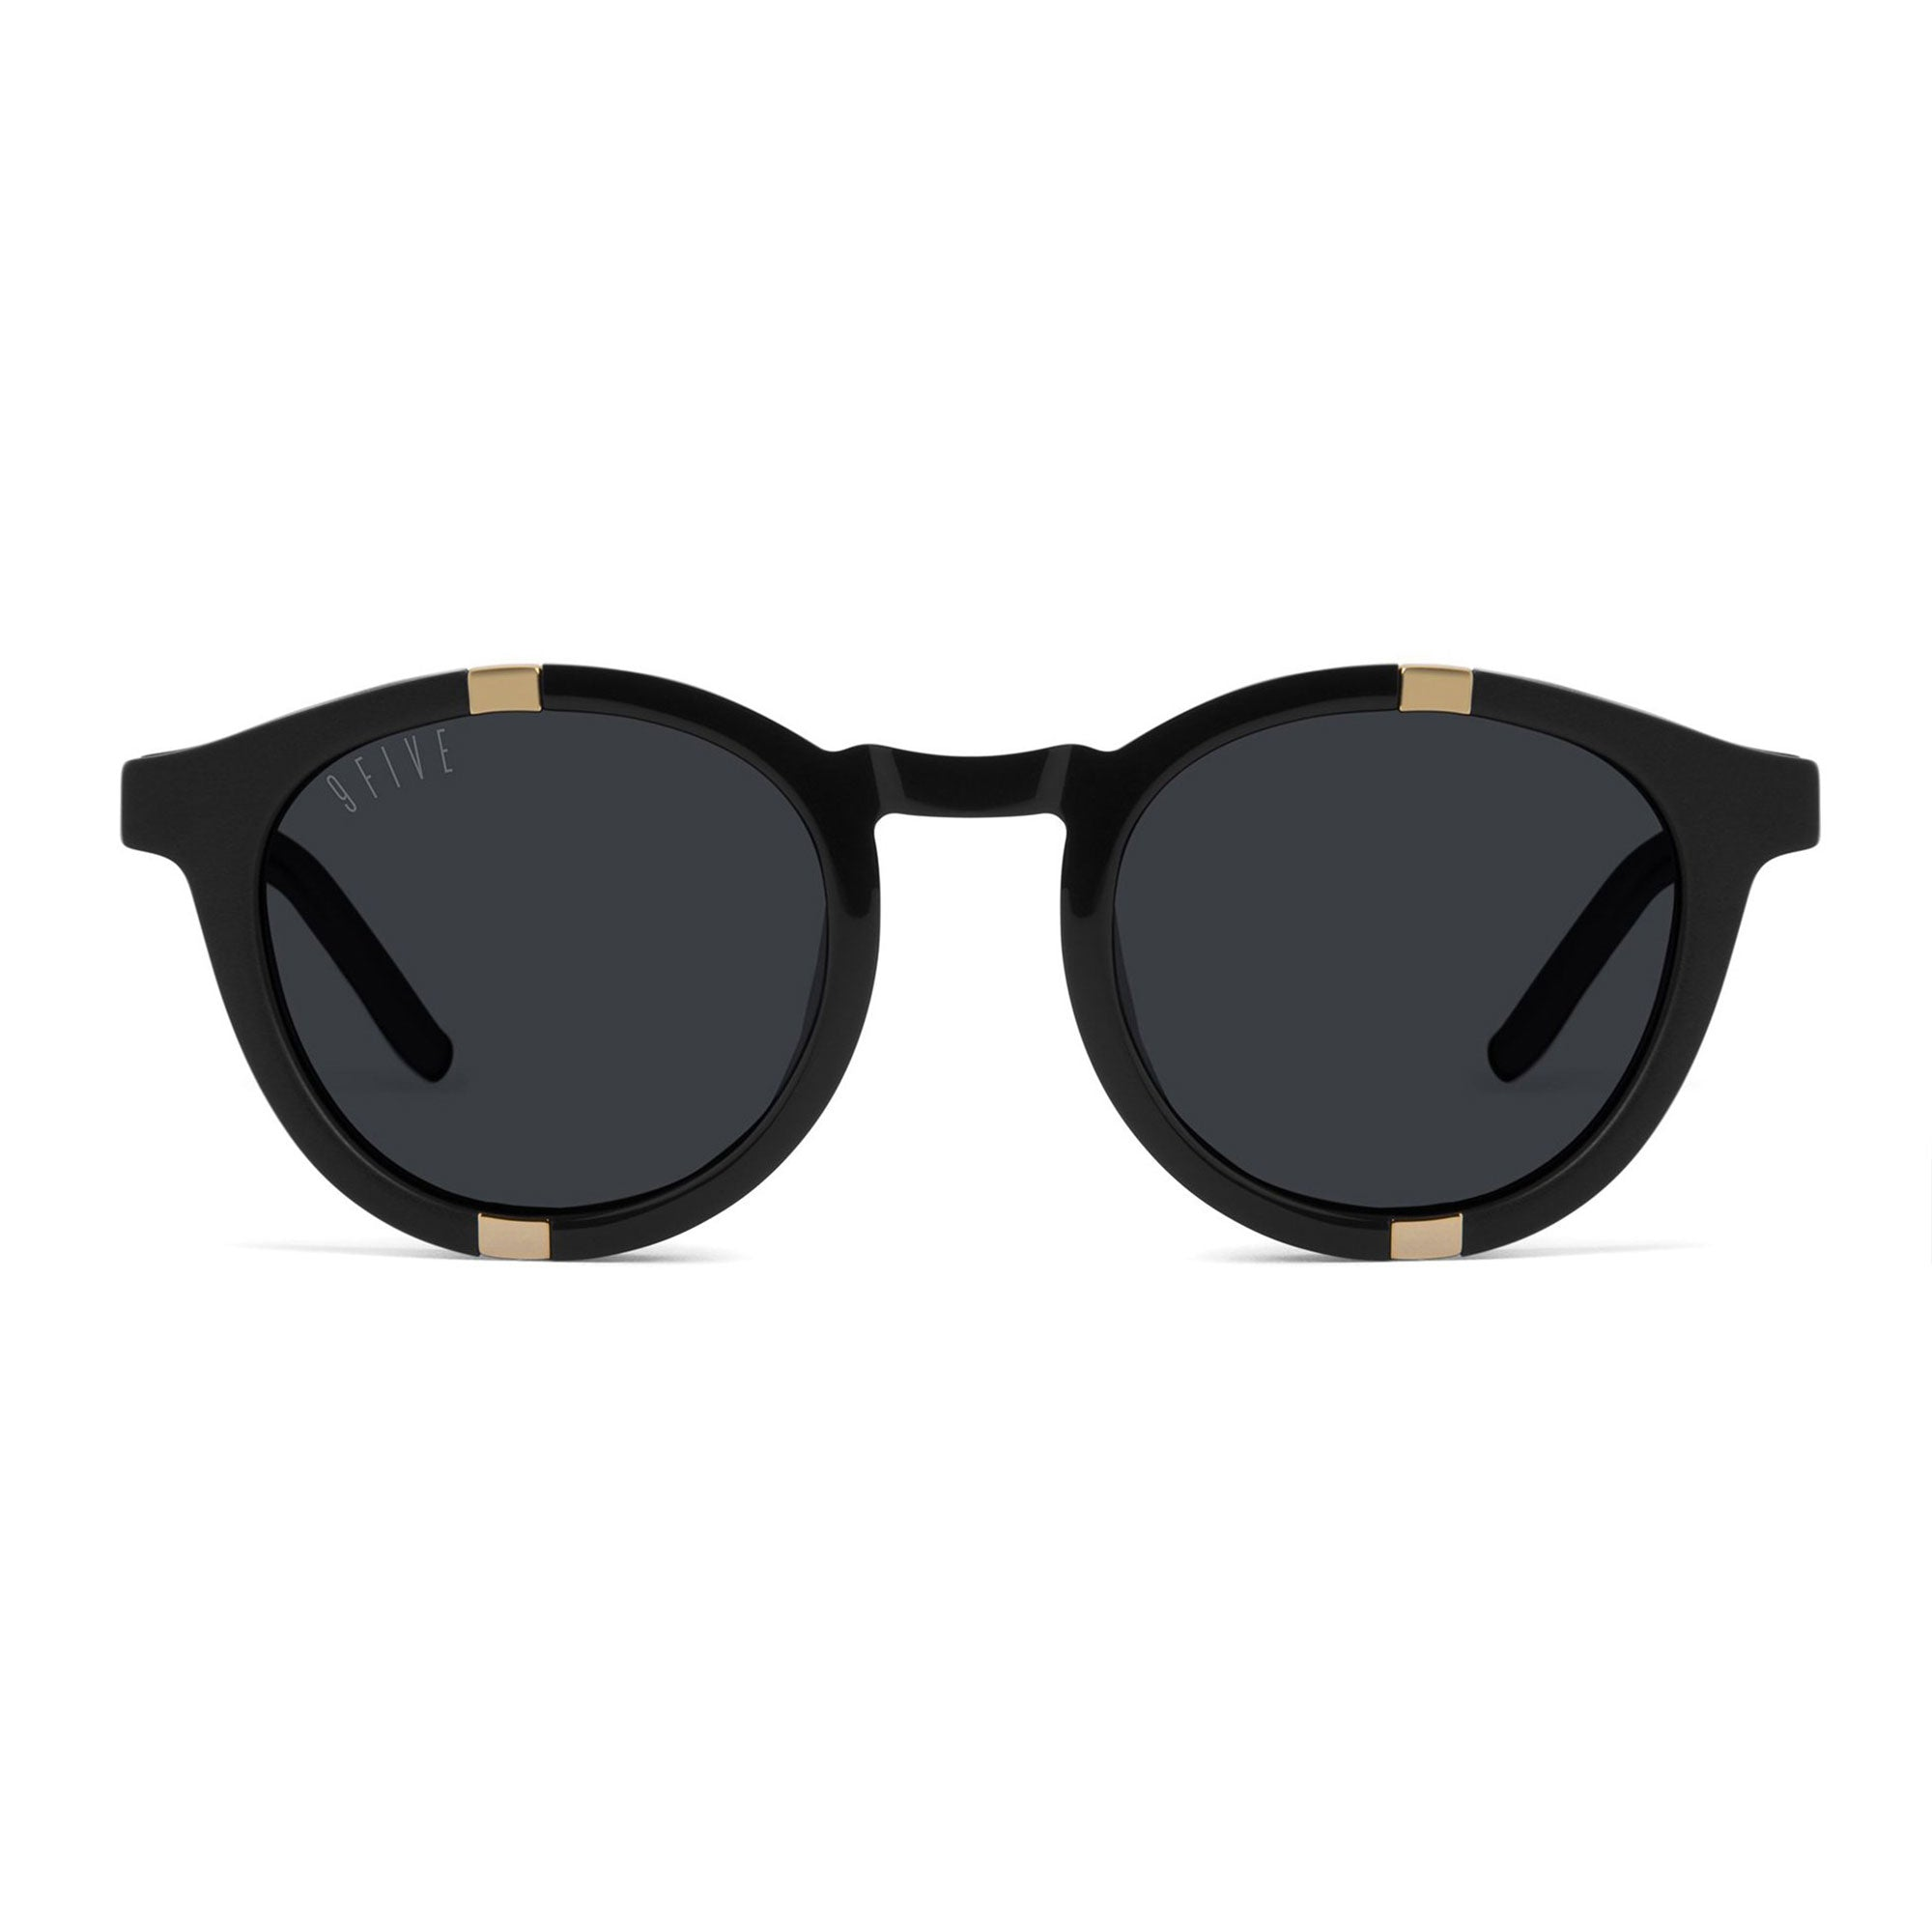 9 Five Grove Sunglasses - Black/Gold Product Photo #2